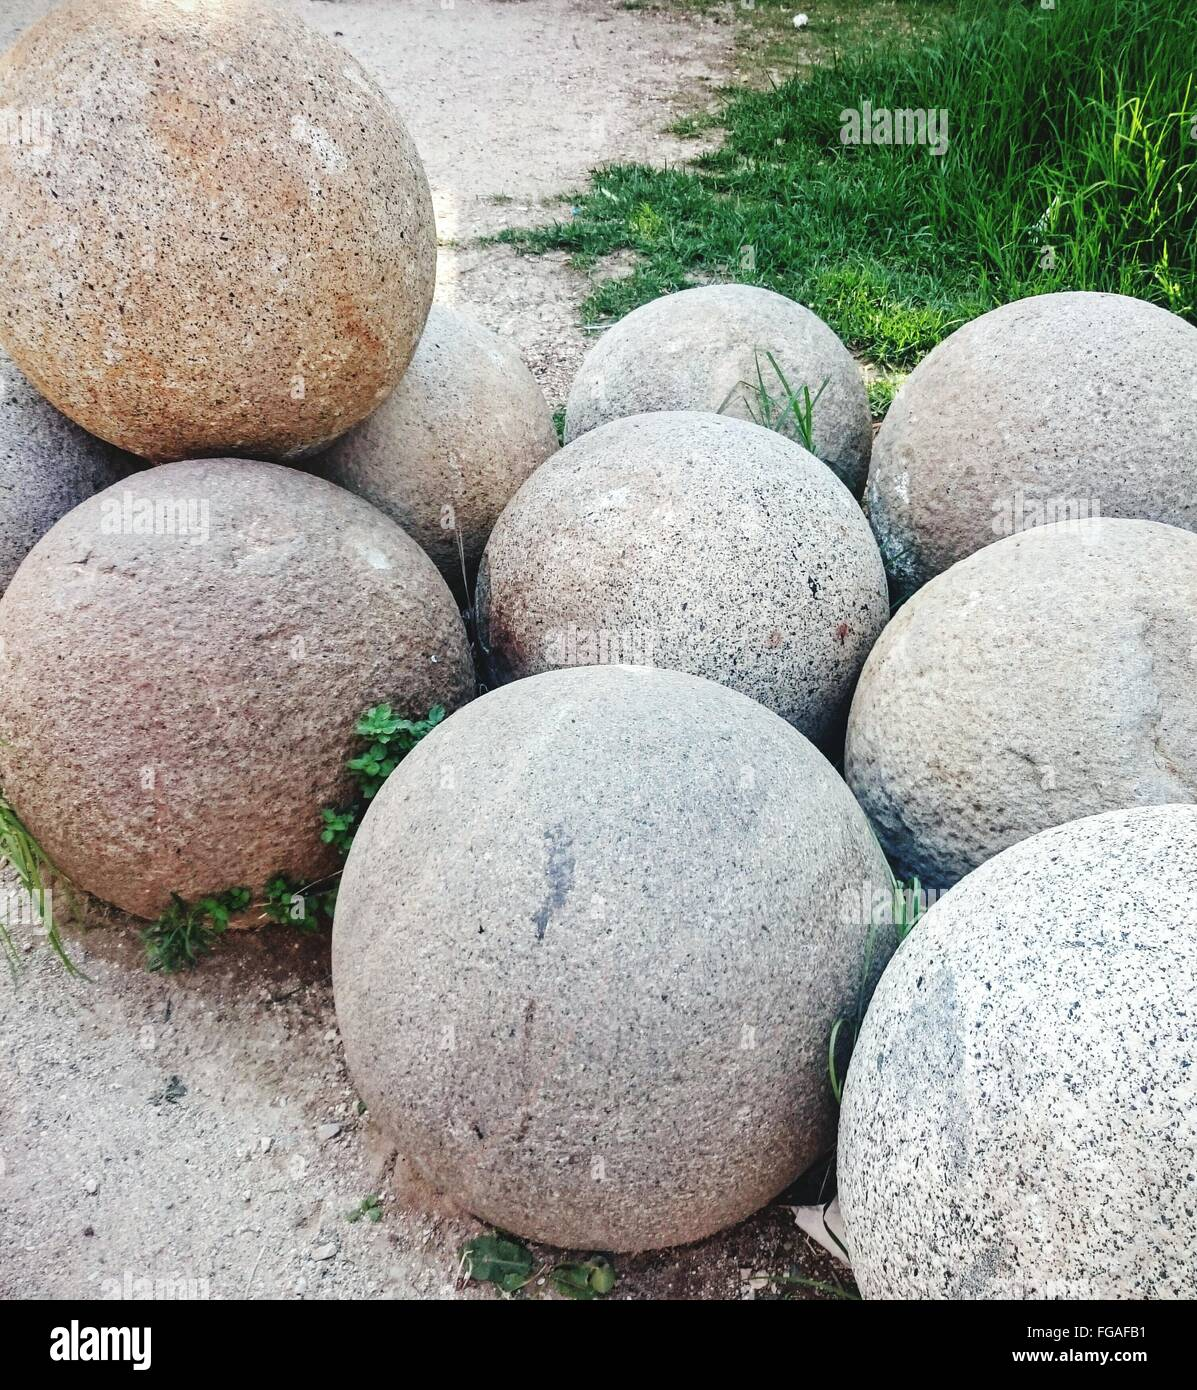 High Angle View Of Sphere Shaped Rocks On Field - Stock Image